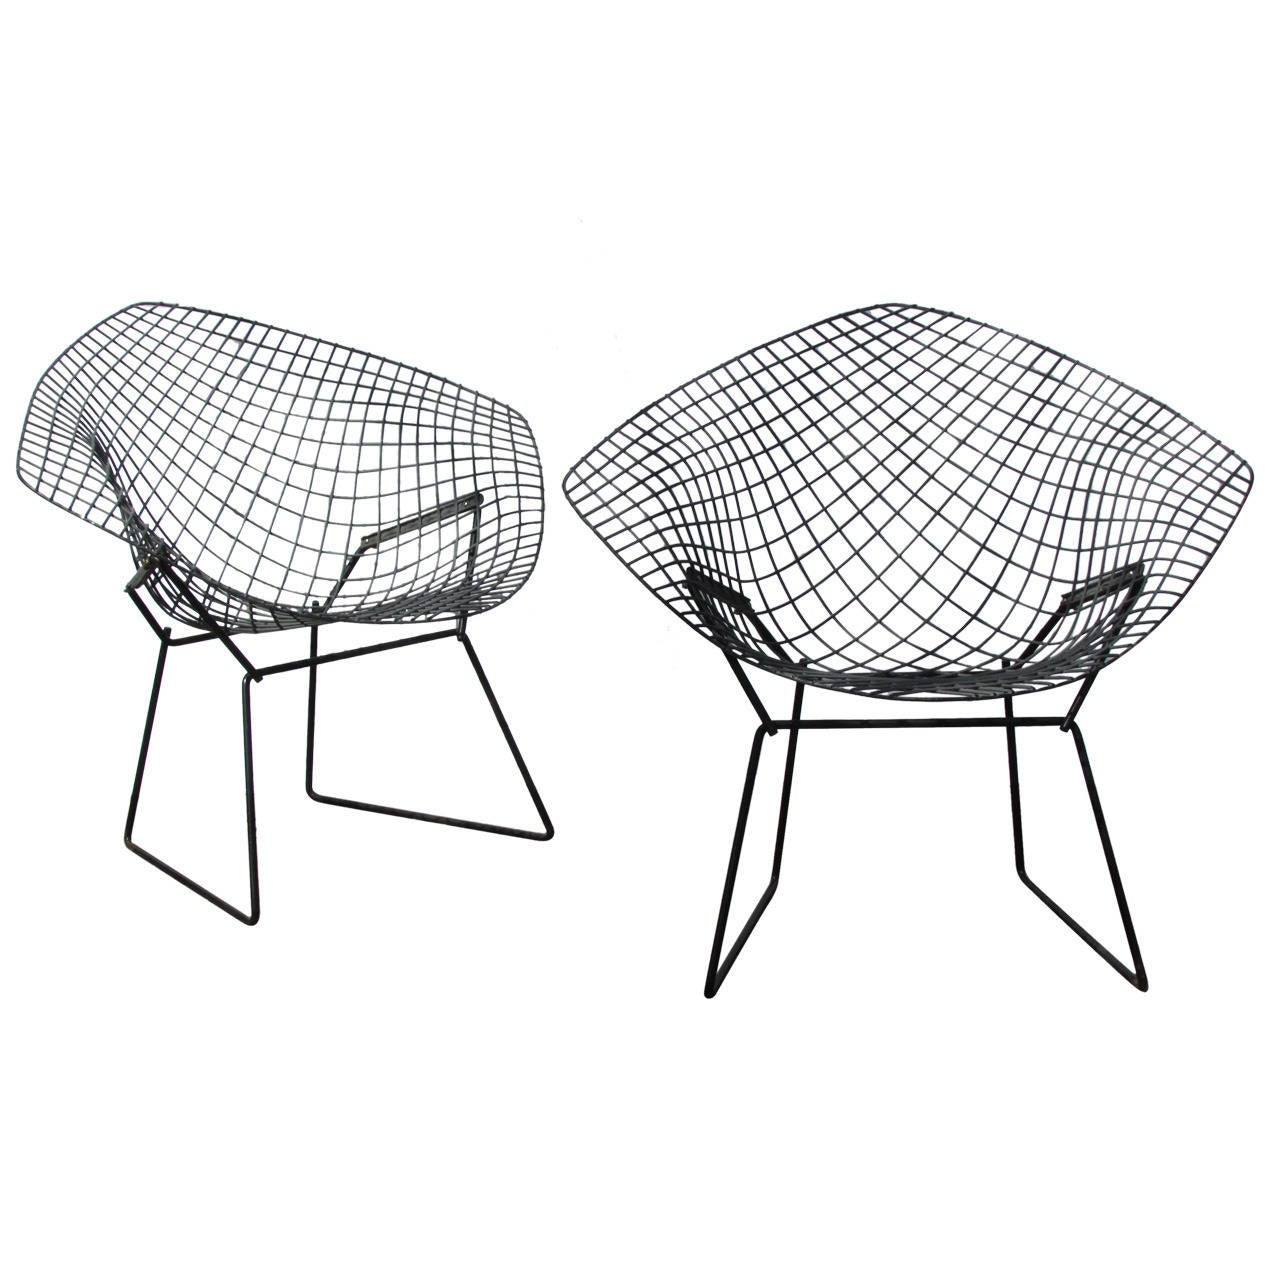 Bertoia diamond chair black - Pair Of Harry Bertoia Diamond Chairs 1